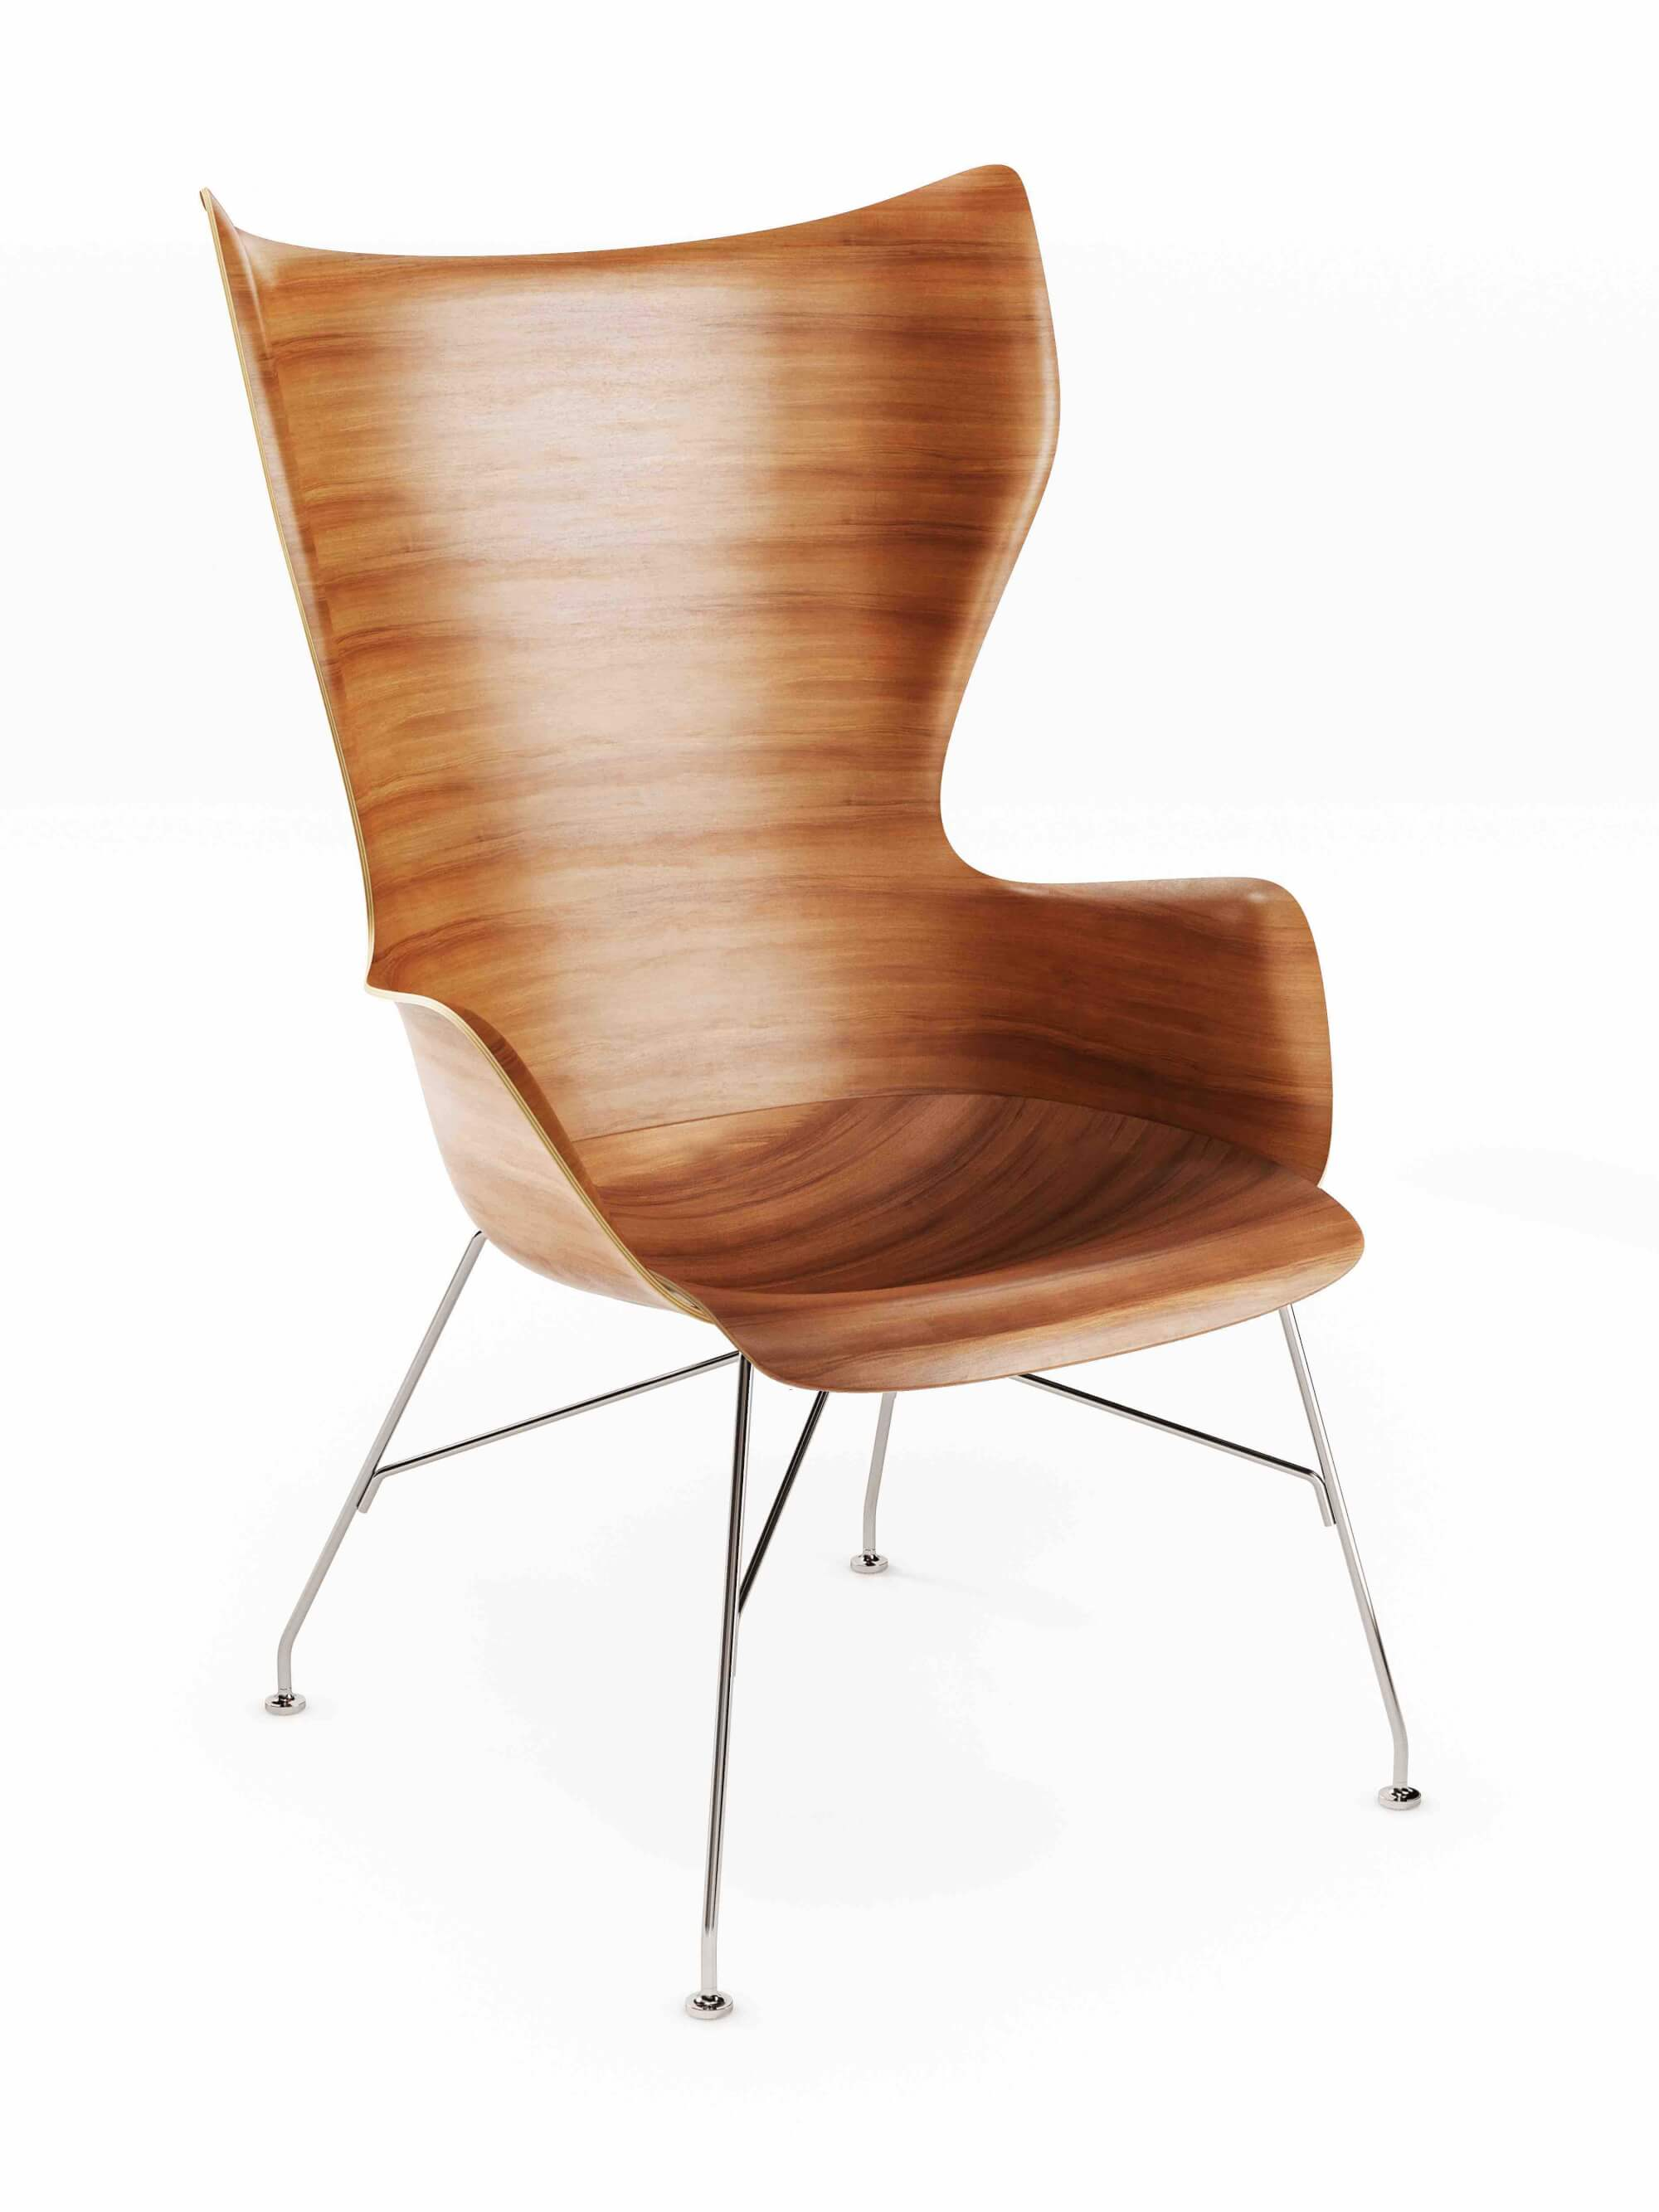 SMART WOOD (KARTELL) - Chairs